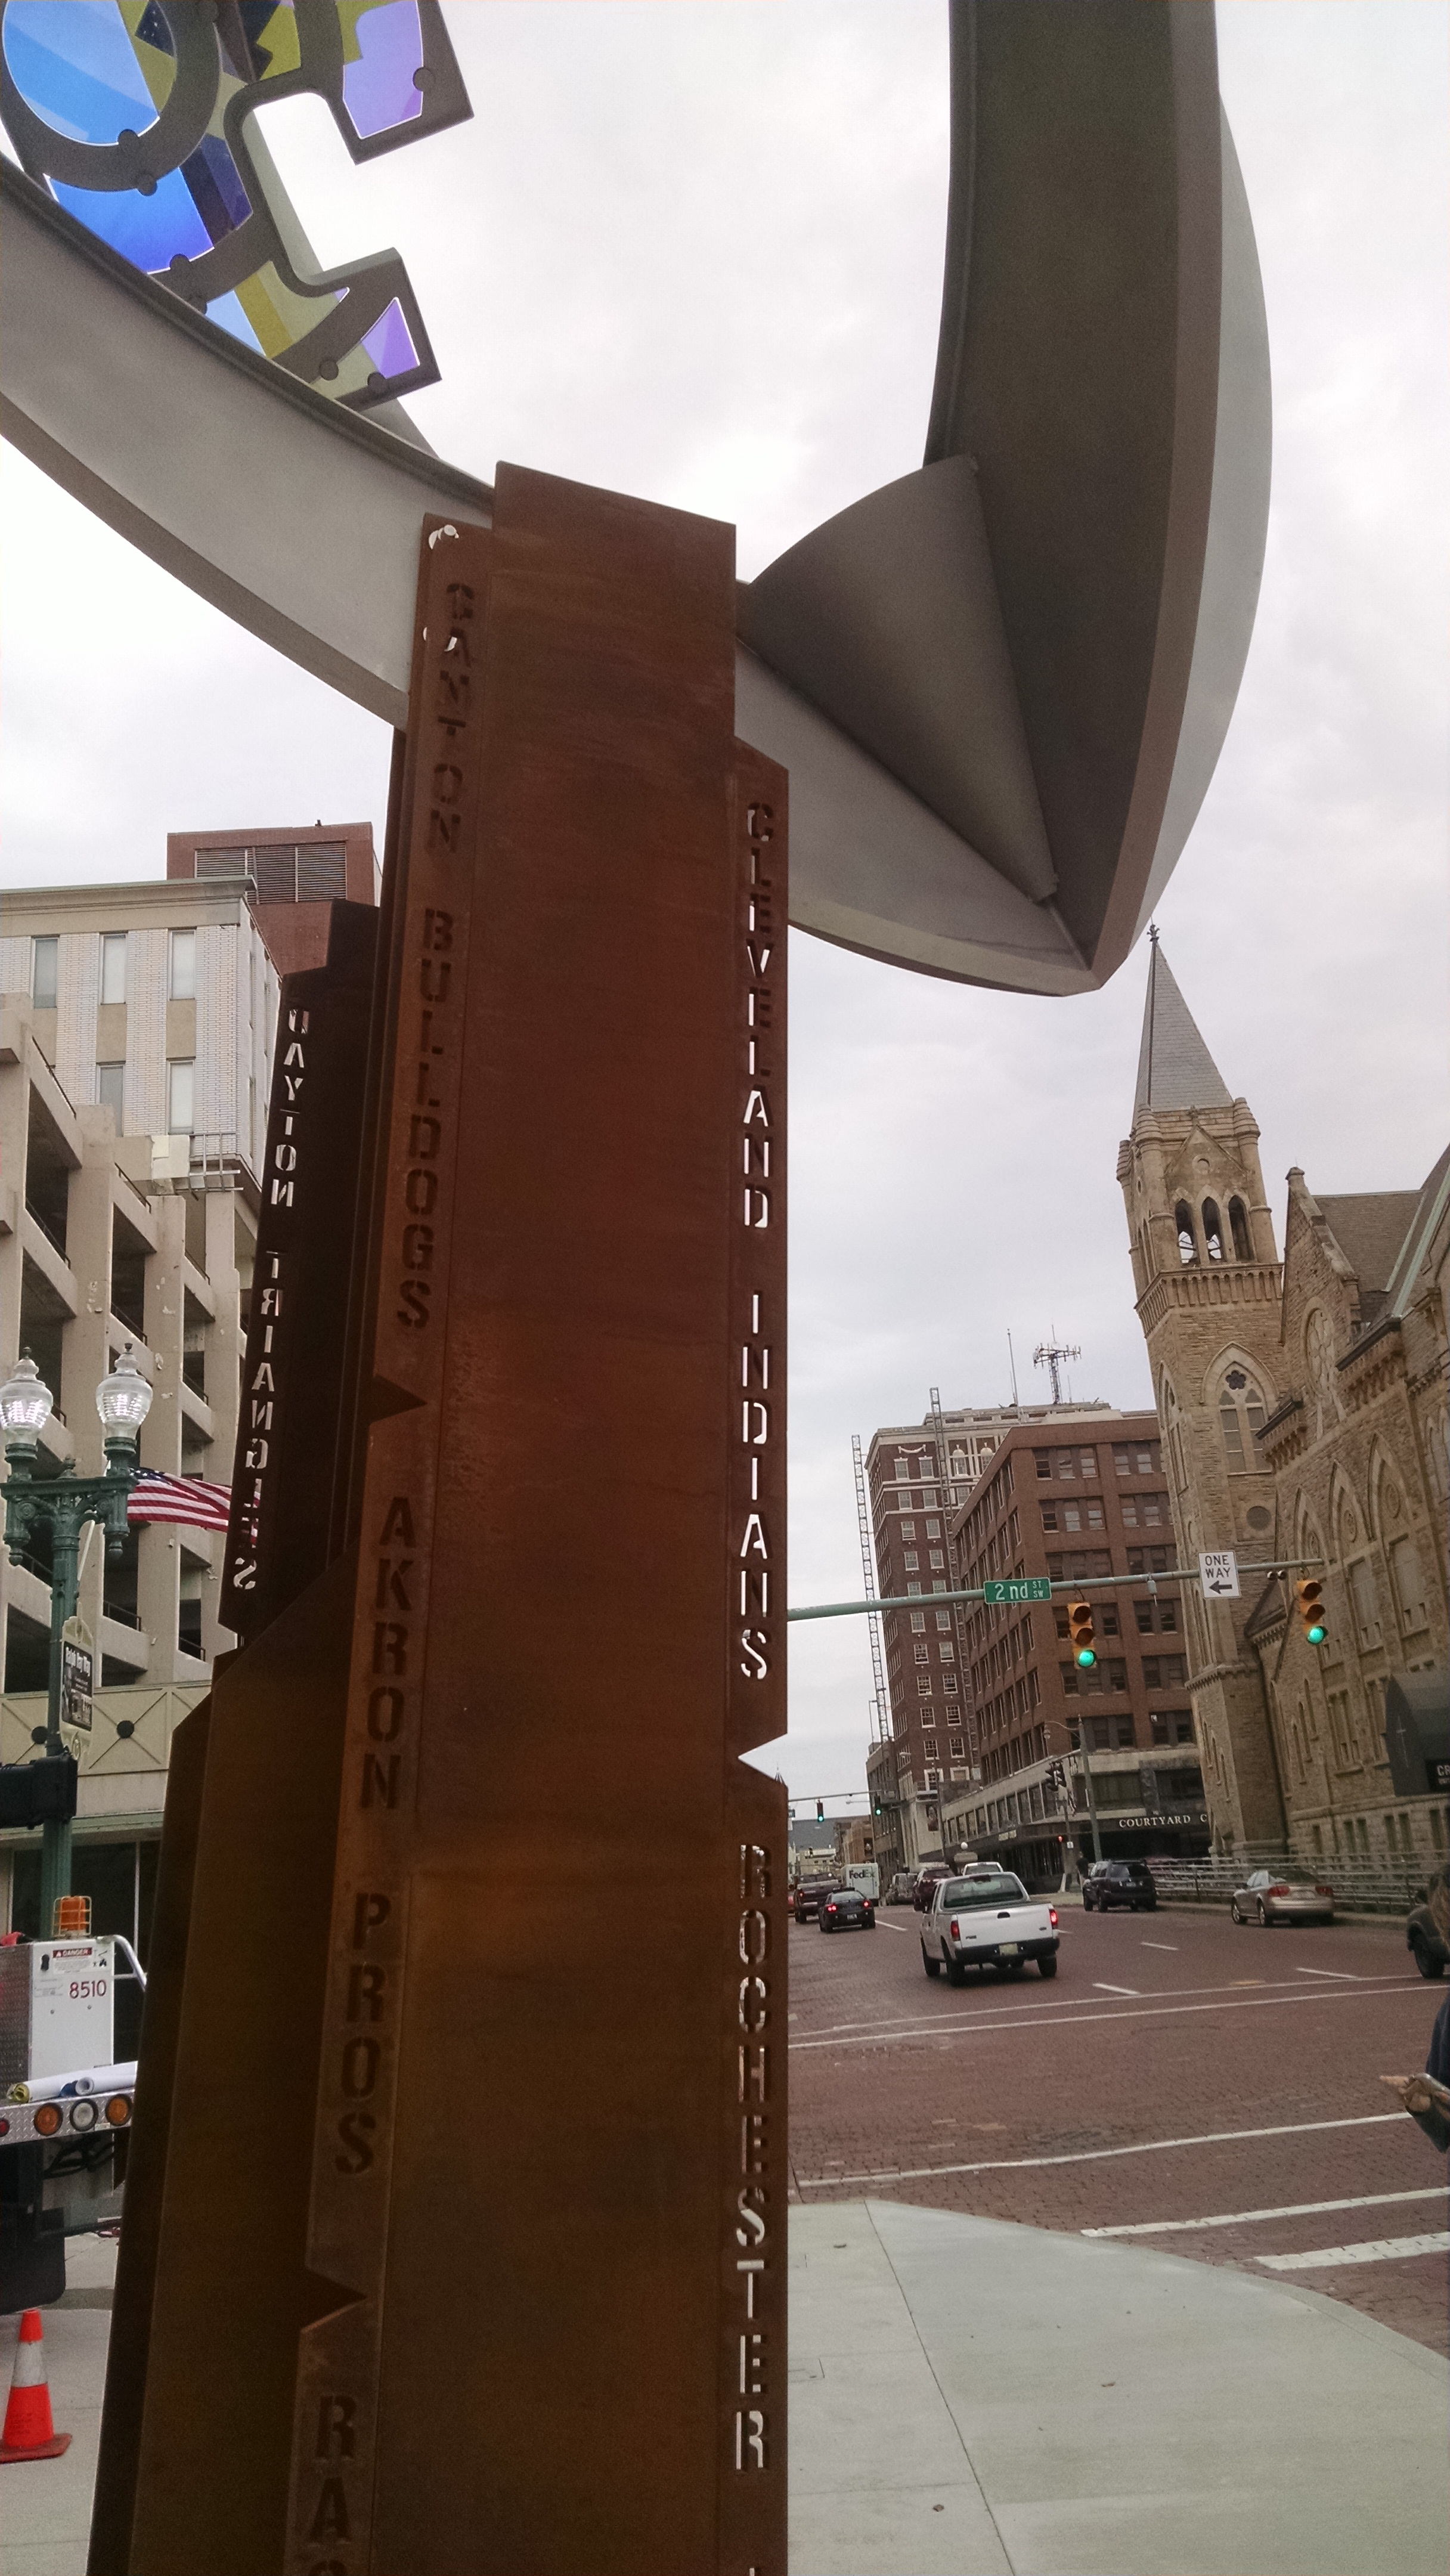 canton_ohio_birth of the nfl_michael clapper_public art services_j grant projects_8.jpg